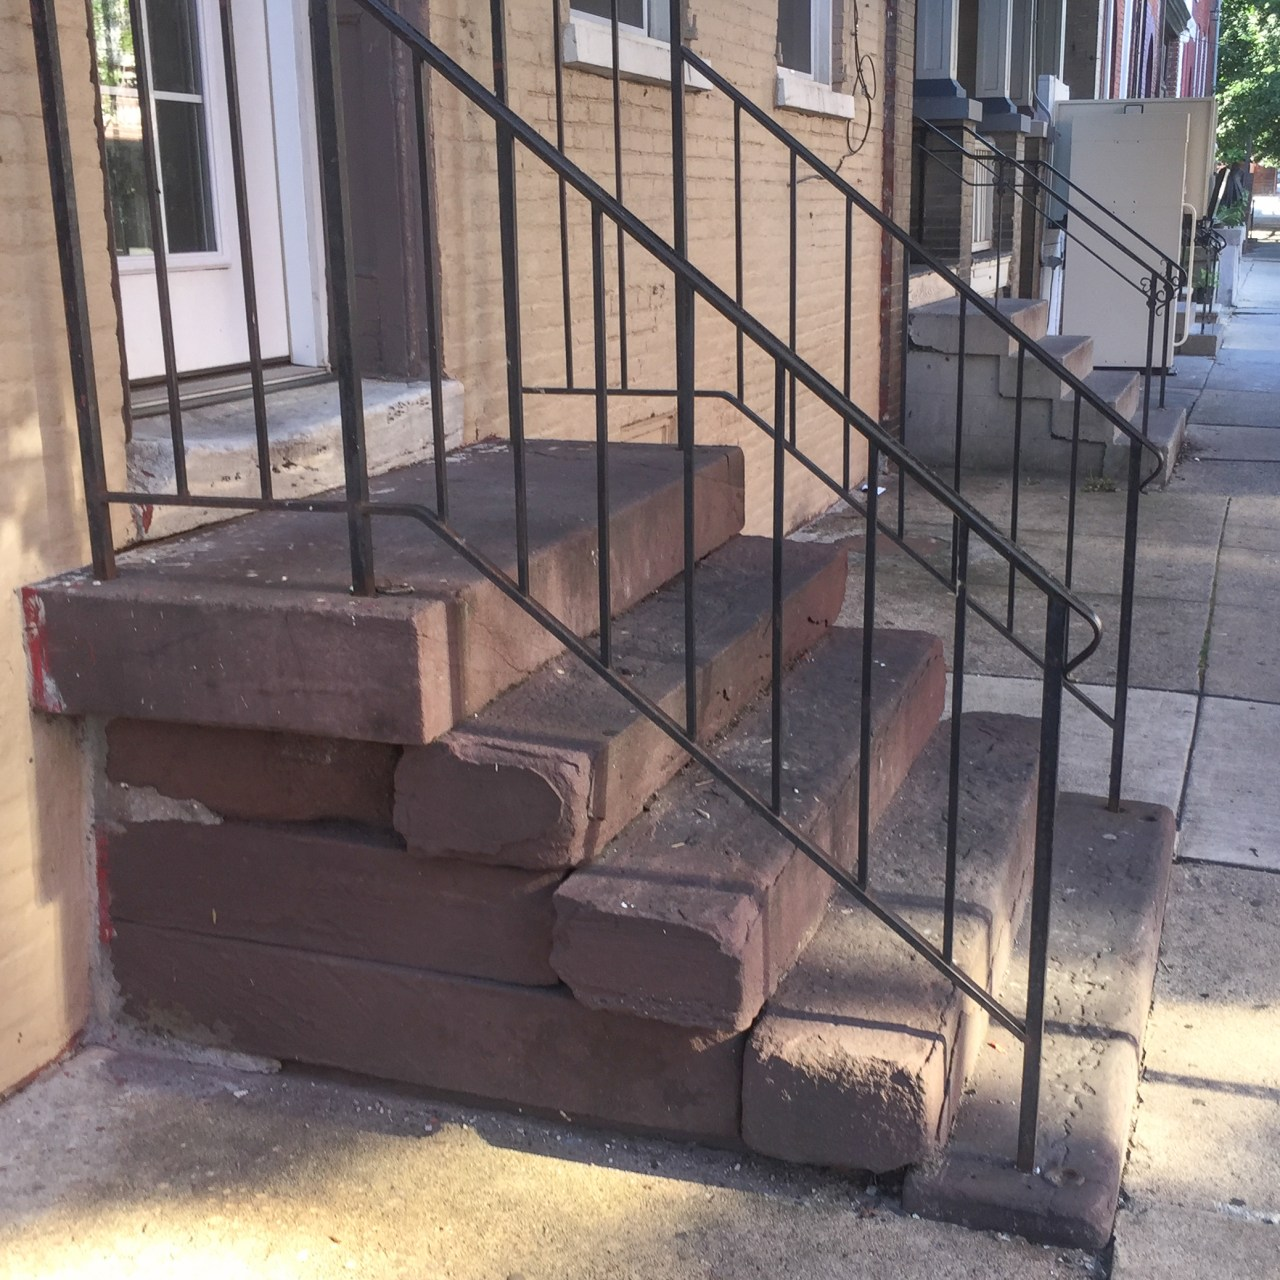 Row house stoop detail - Lancaster, PA